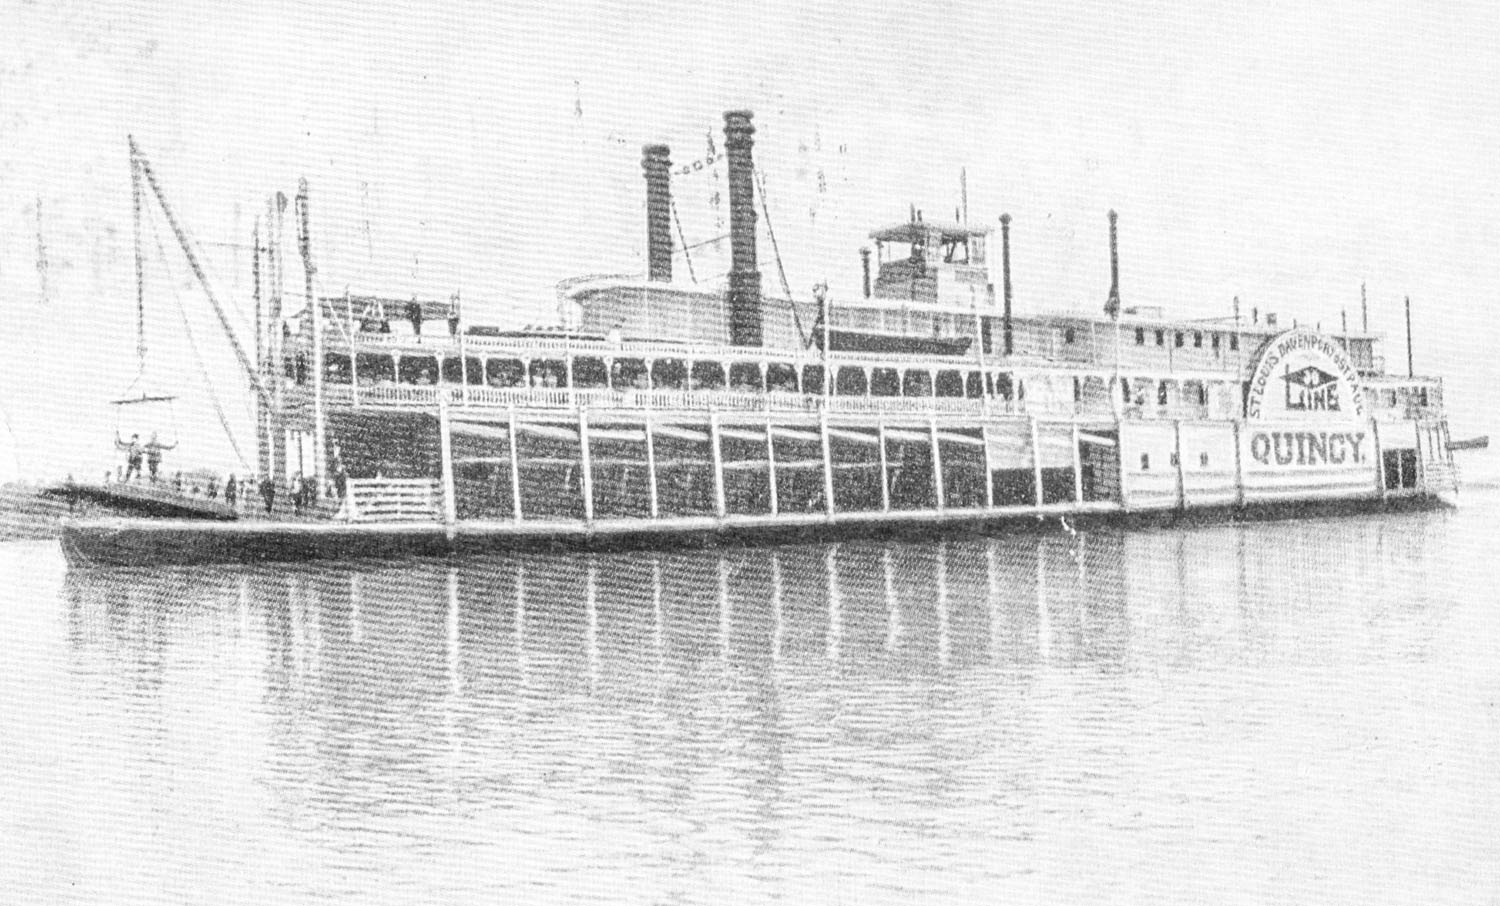 The Steamer Quincy